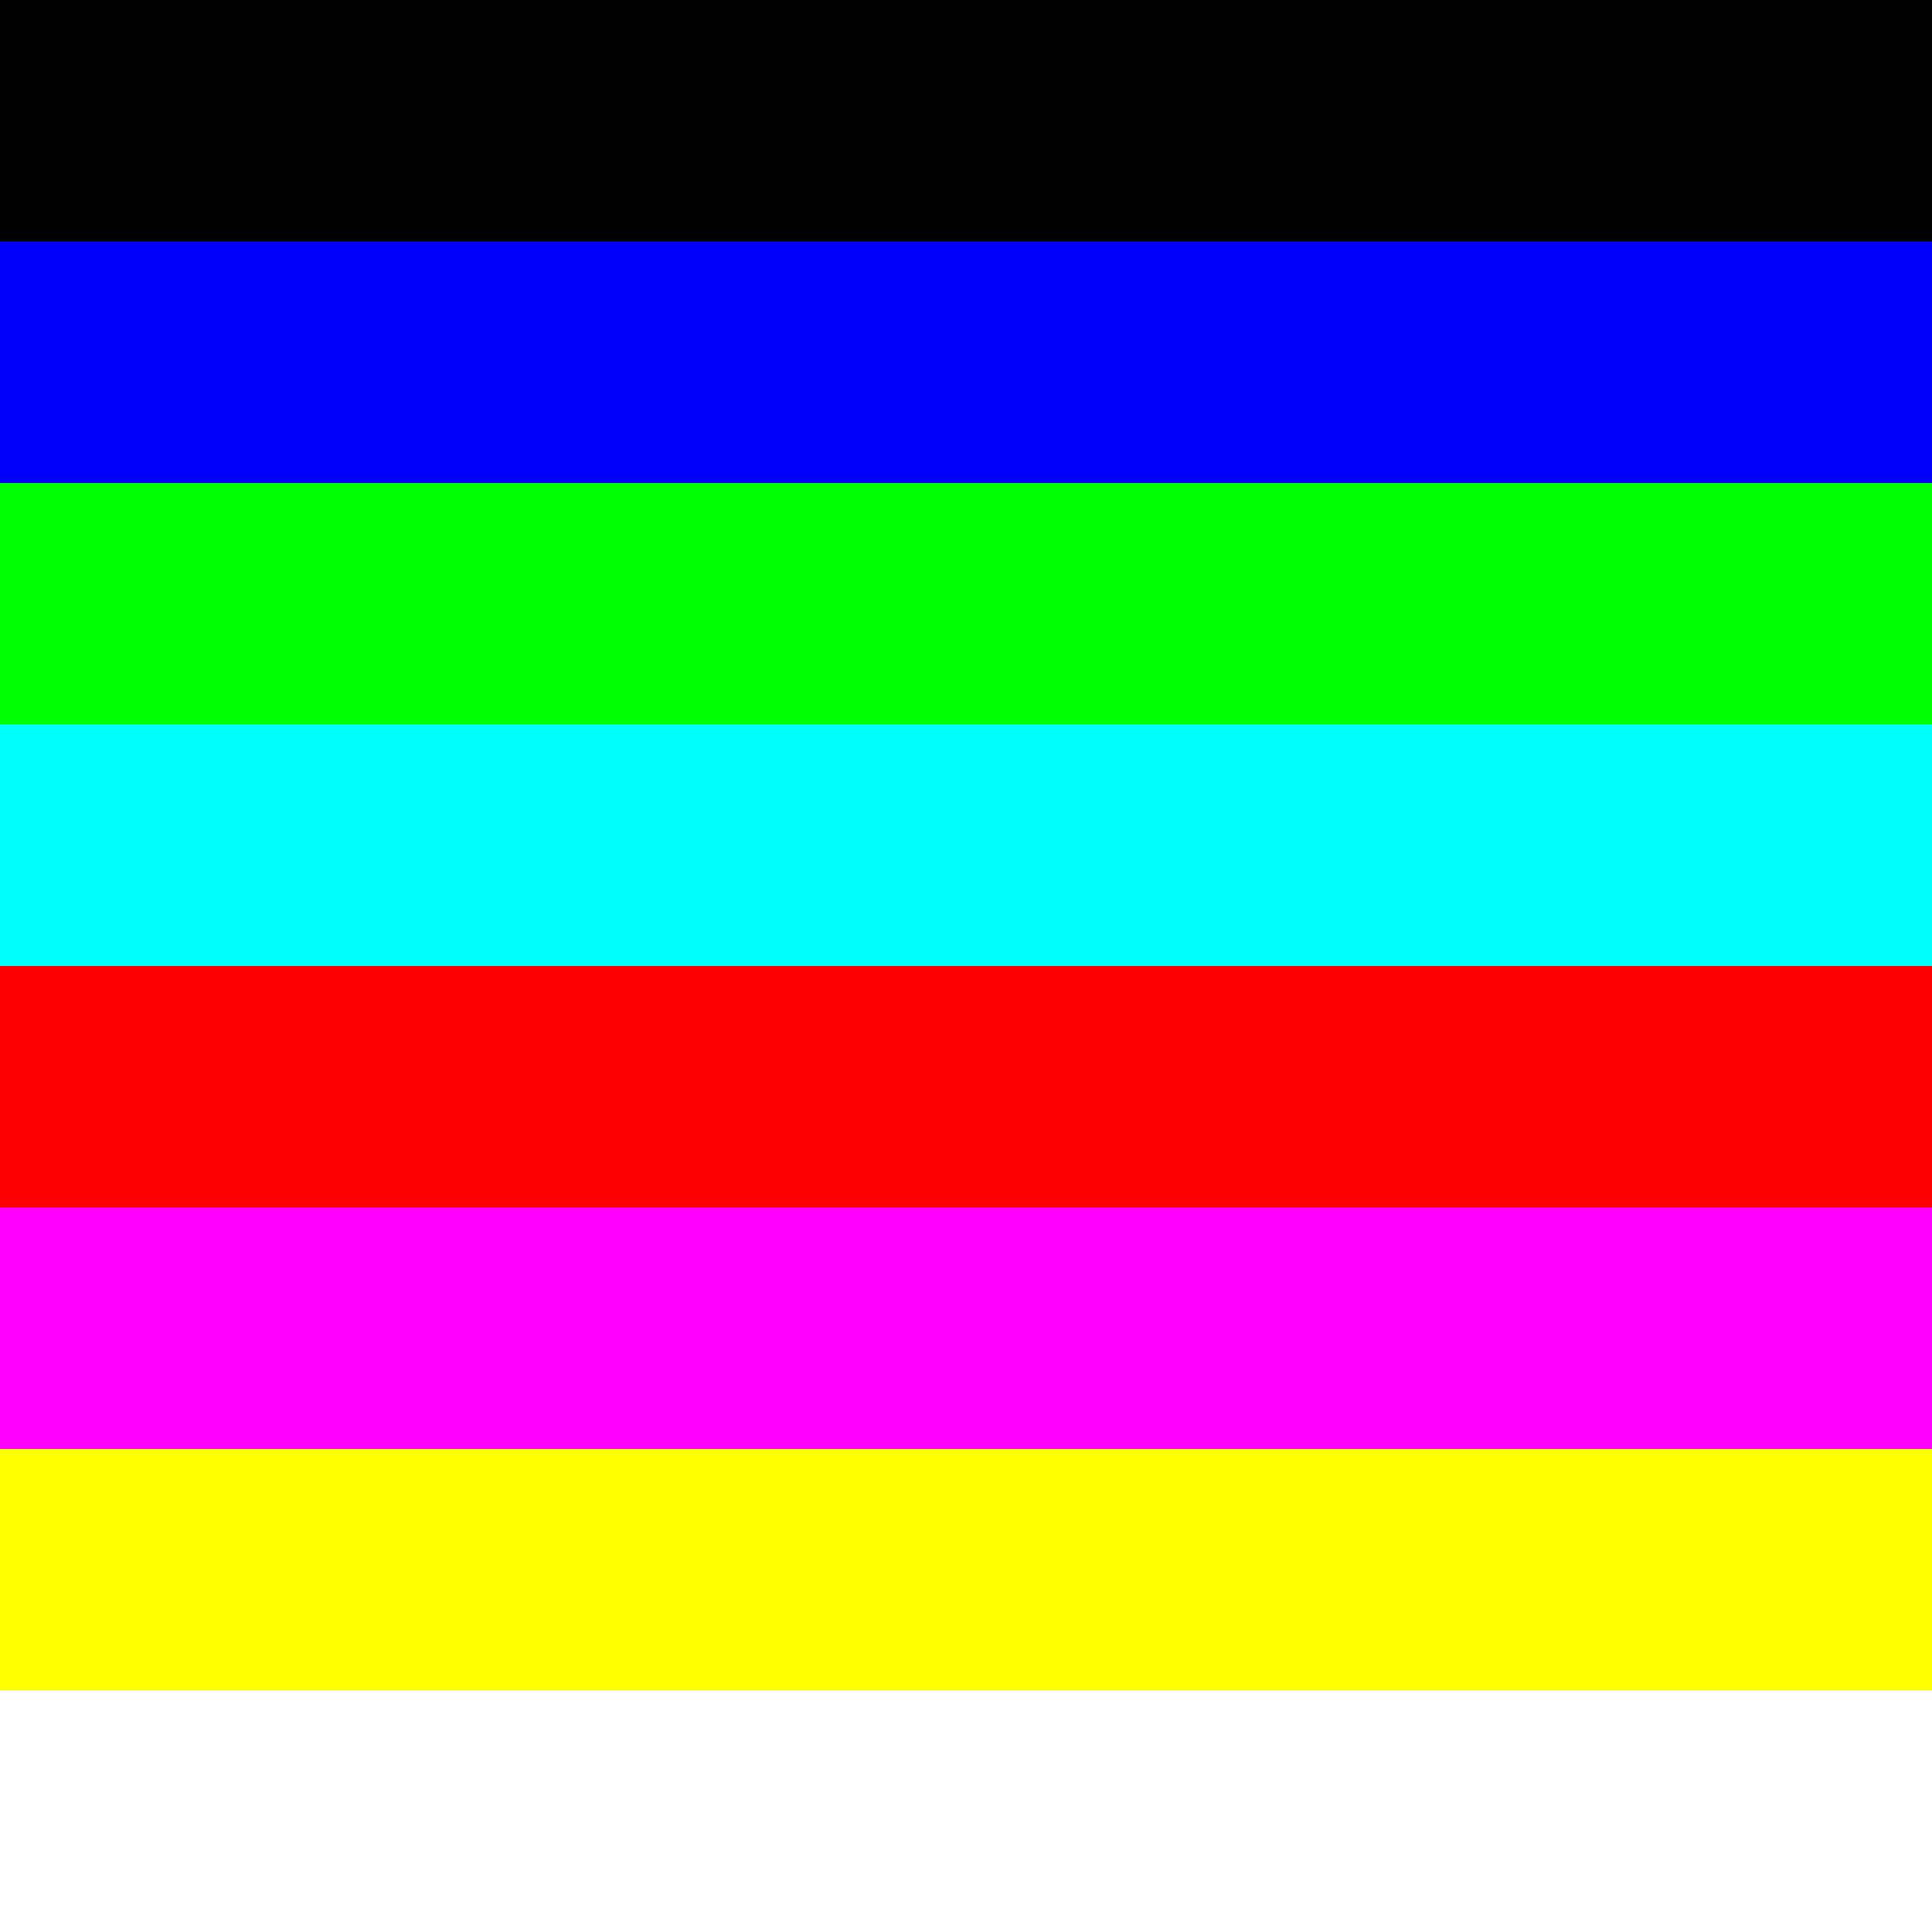 8 color palette by 10binary